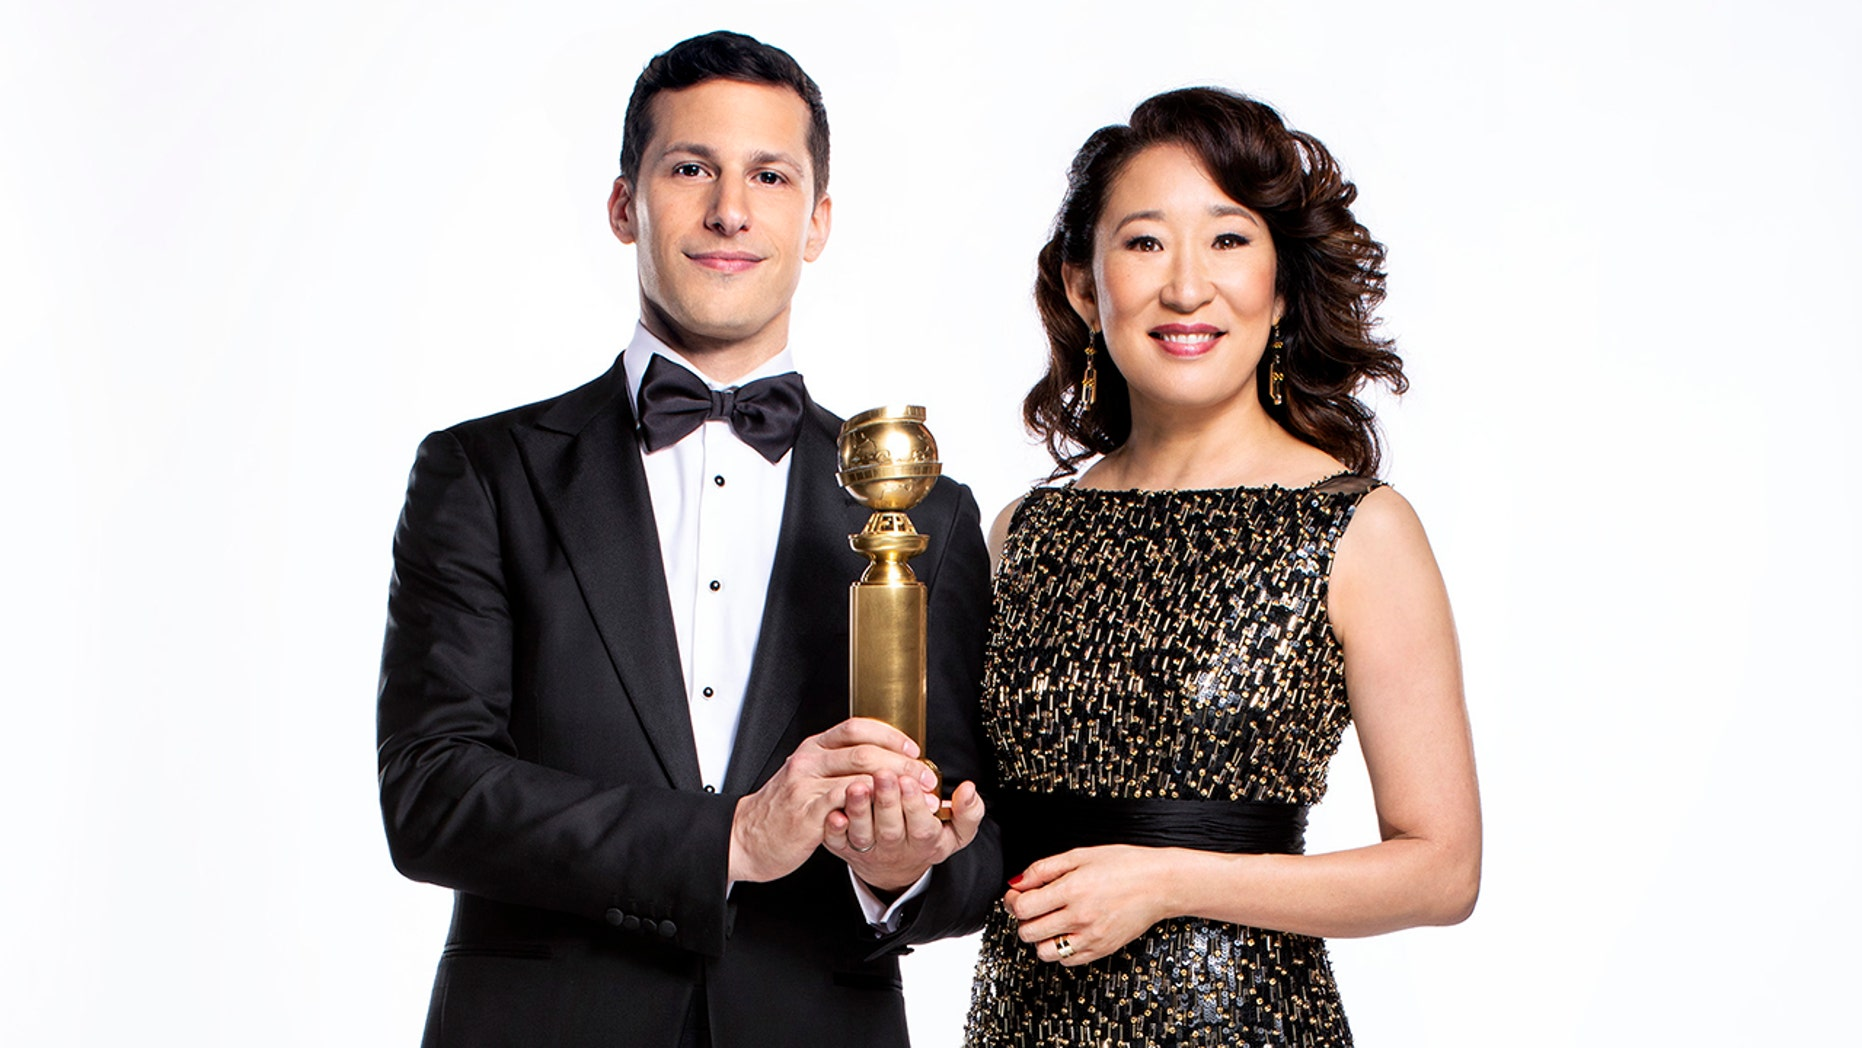 Golden Globes Co-Host Sandra Oh 'Not Interested' in Trump Bashing